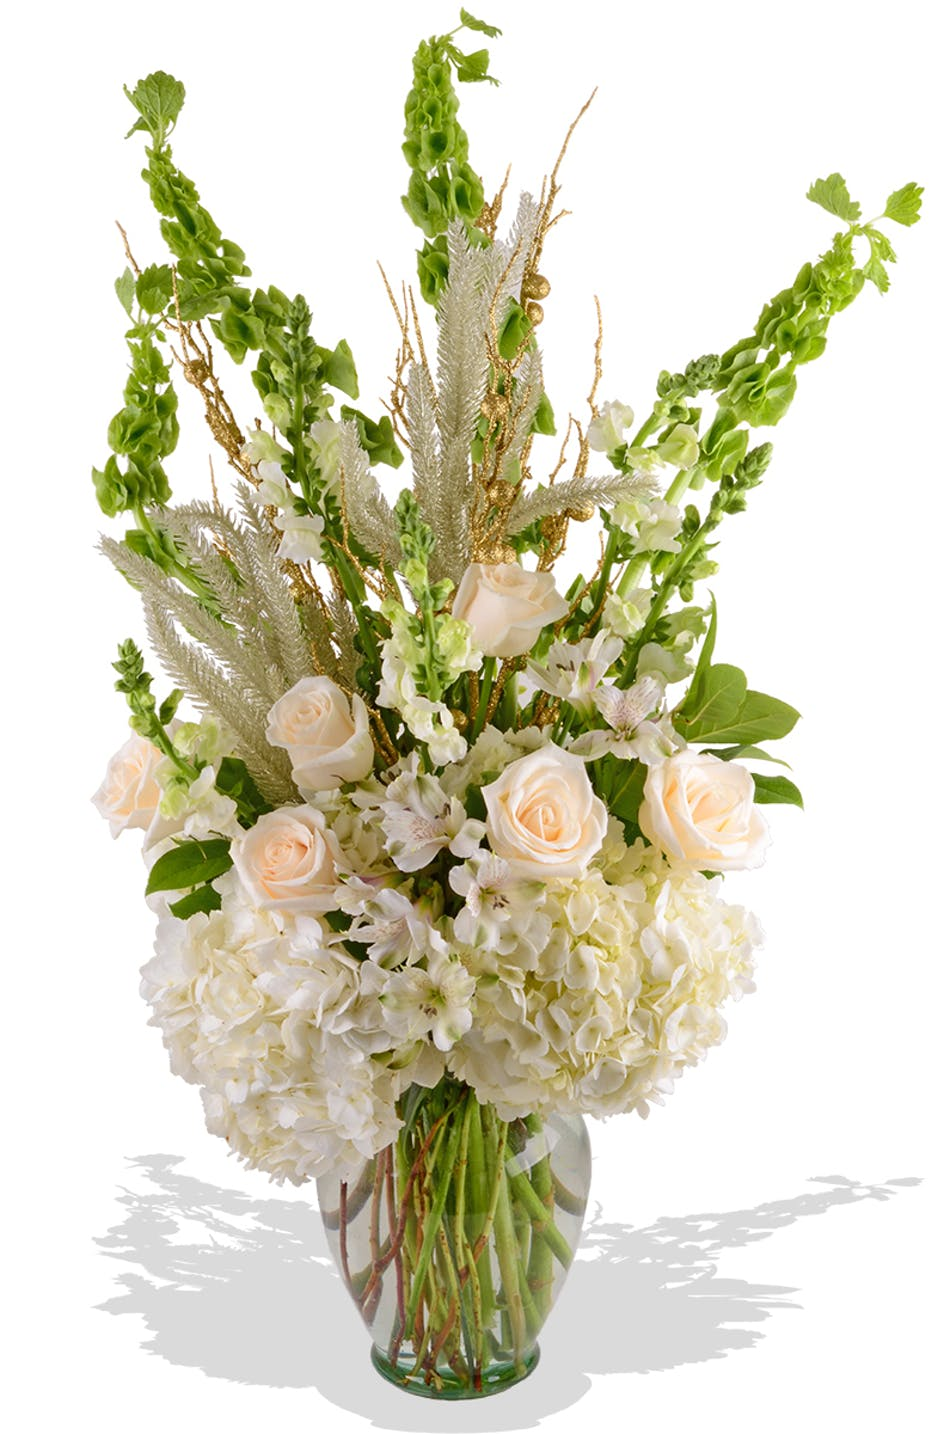 White New Year's Flowers Baton Rouge, LA - Same-day Delivery by Billy Heroman's